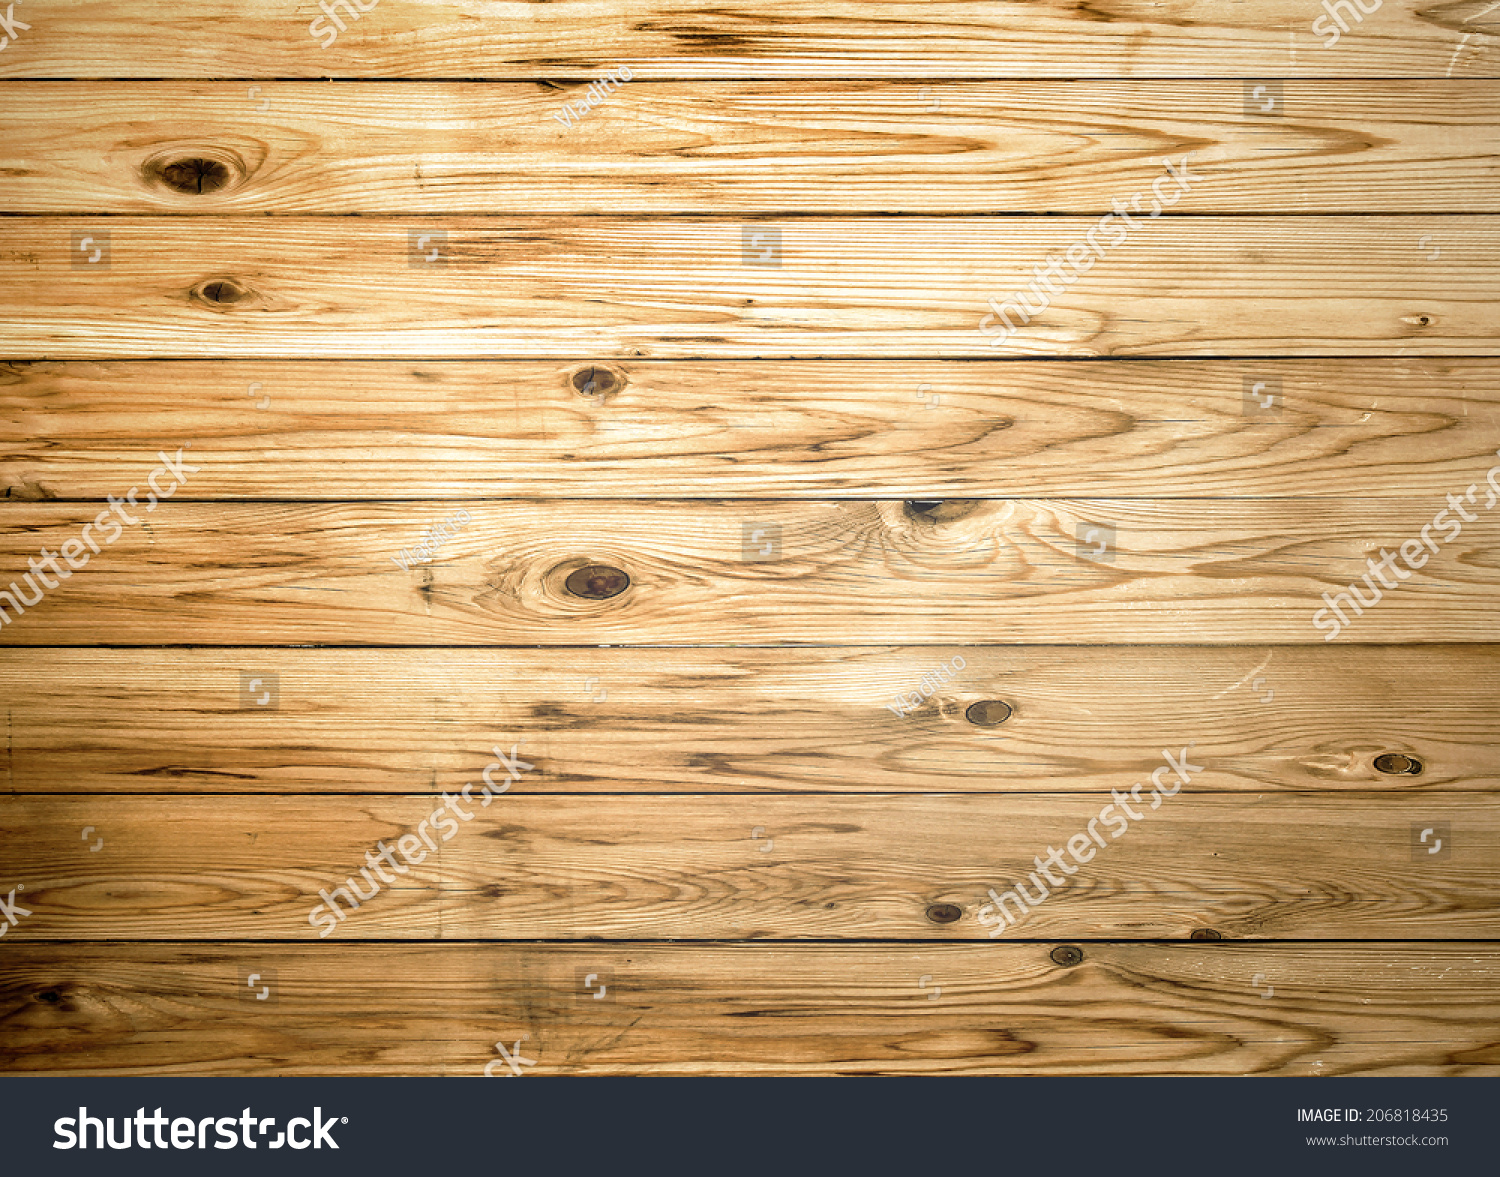 Old vintage white natural wood or wooden texture background or - Background Of Old Natural Wooden Dark Empty Room With Messy And Grungy Crack Beech Oak